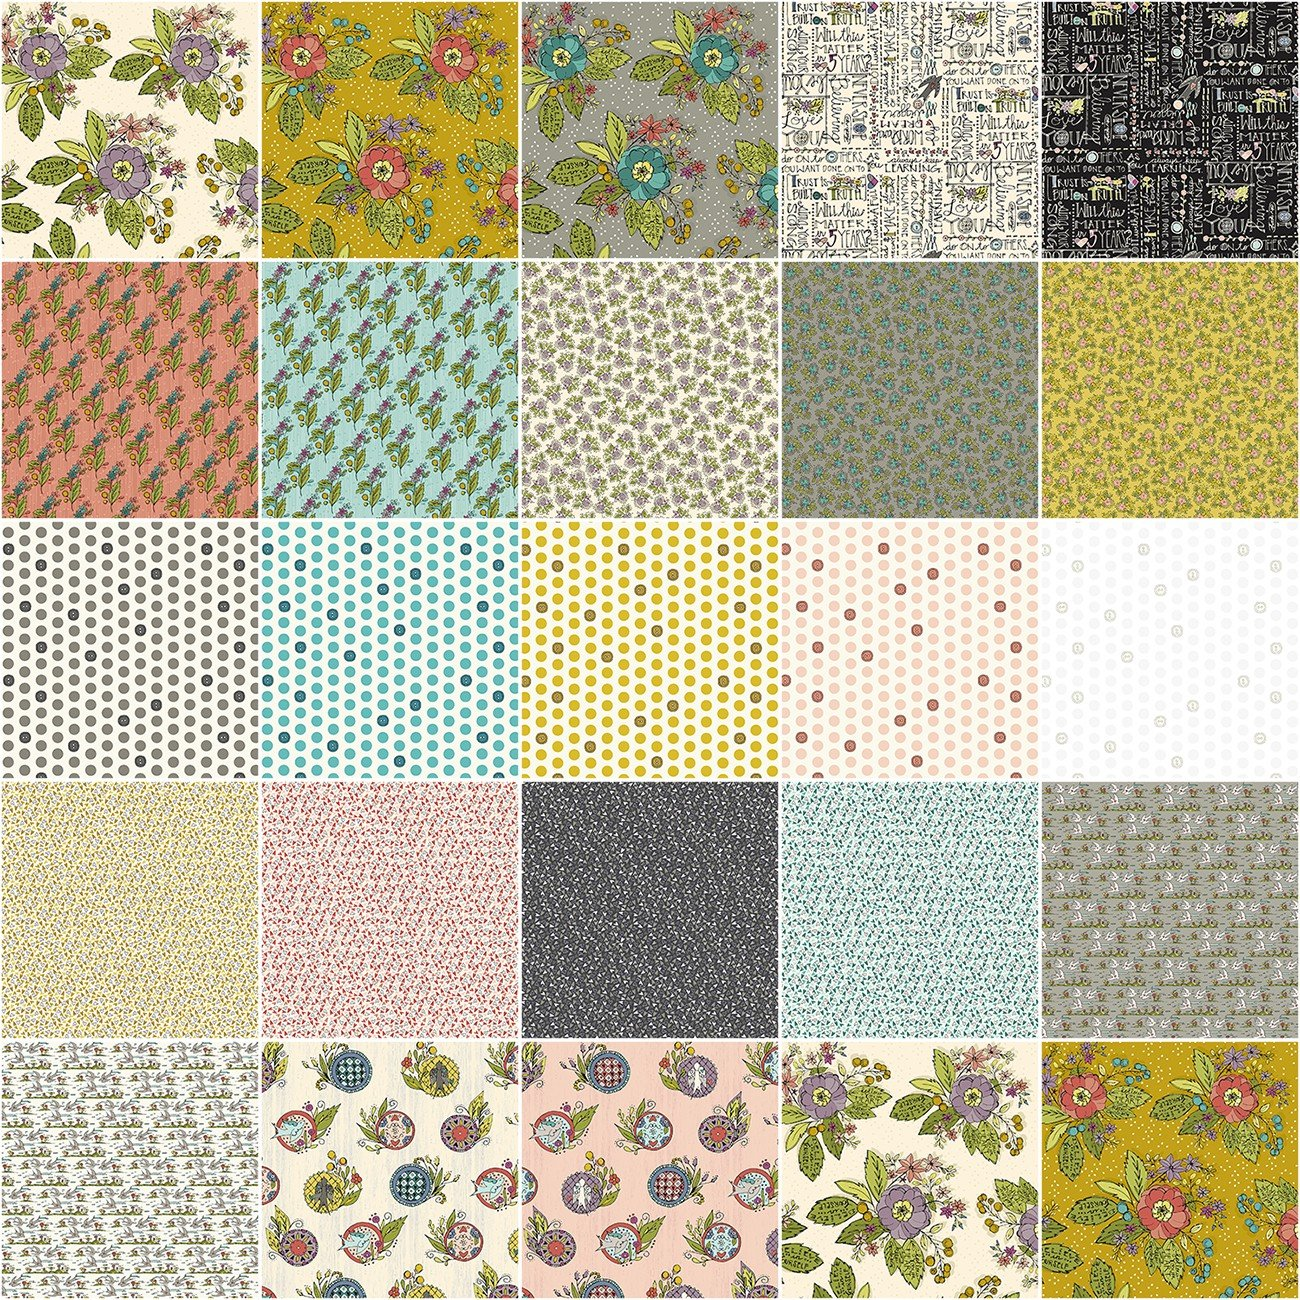 Bubbie's Buttons and Blooms by Windham